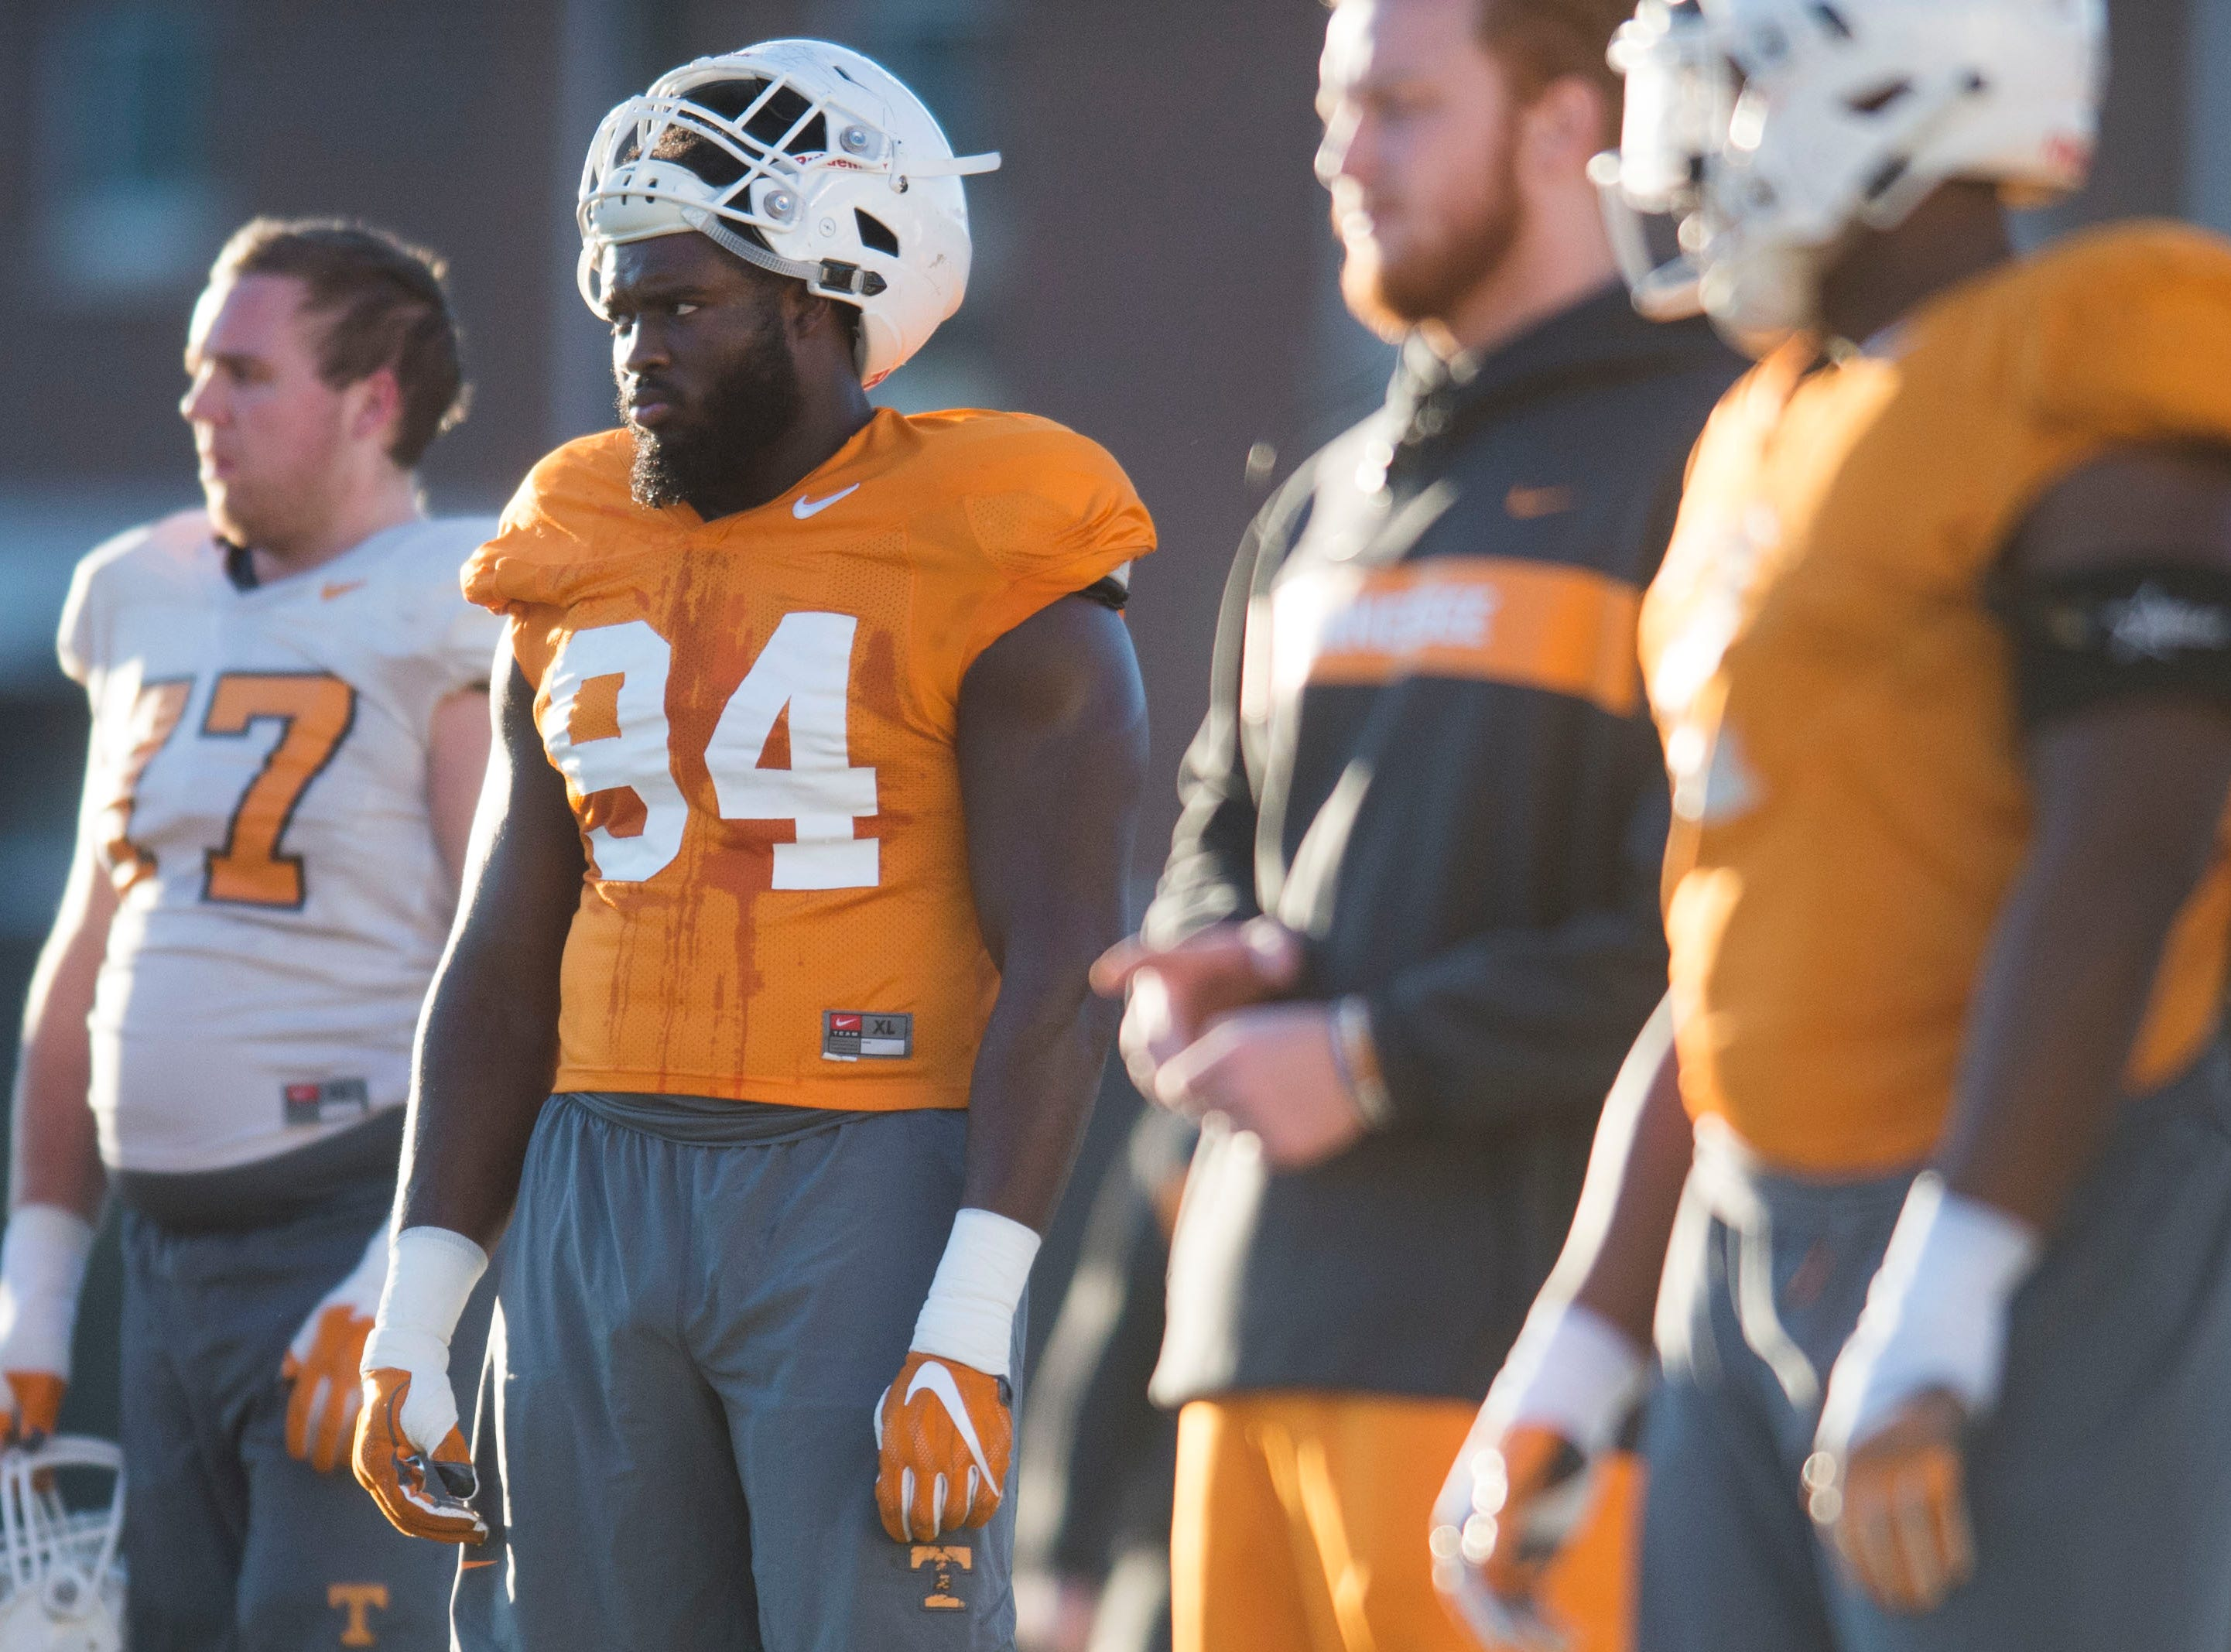 Tennessee defensive lineman Matthew Butler (94) stands on the field during Vols football practice Wednesday, Nov. 21, 2018.